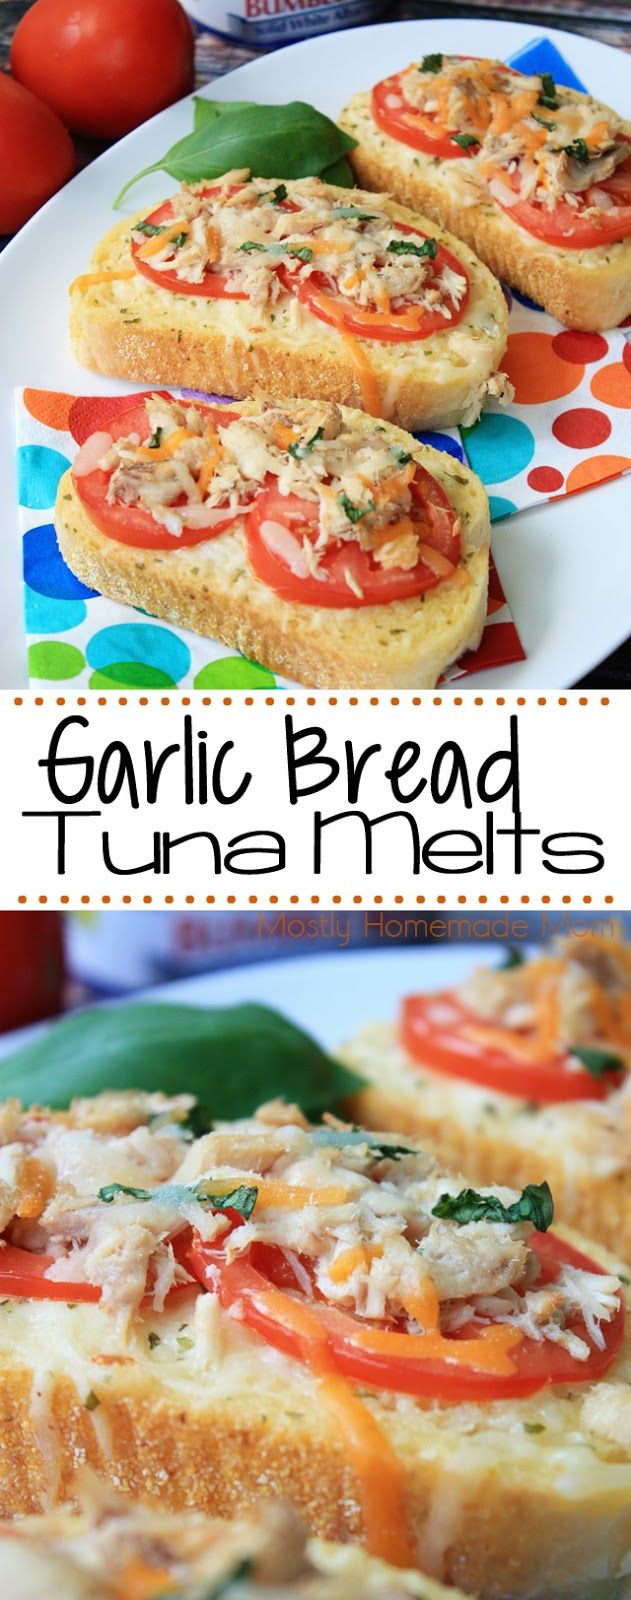 Garlic Bread Tuna Melt - Thick sliced garlic bread topped with albacore tuna, sliced roma tomato, and fresh basil - this is a dinner your family needs to try this week! @bumblebeefoods  #OnlyAlbacore #CG #ad